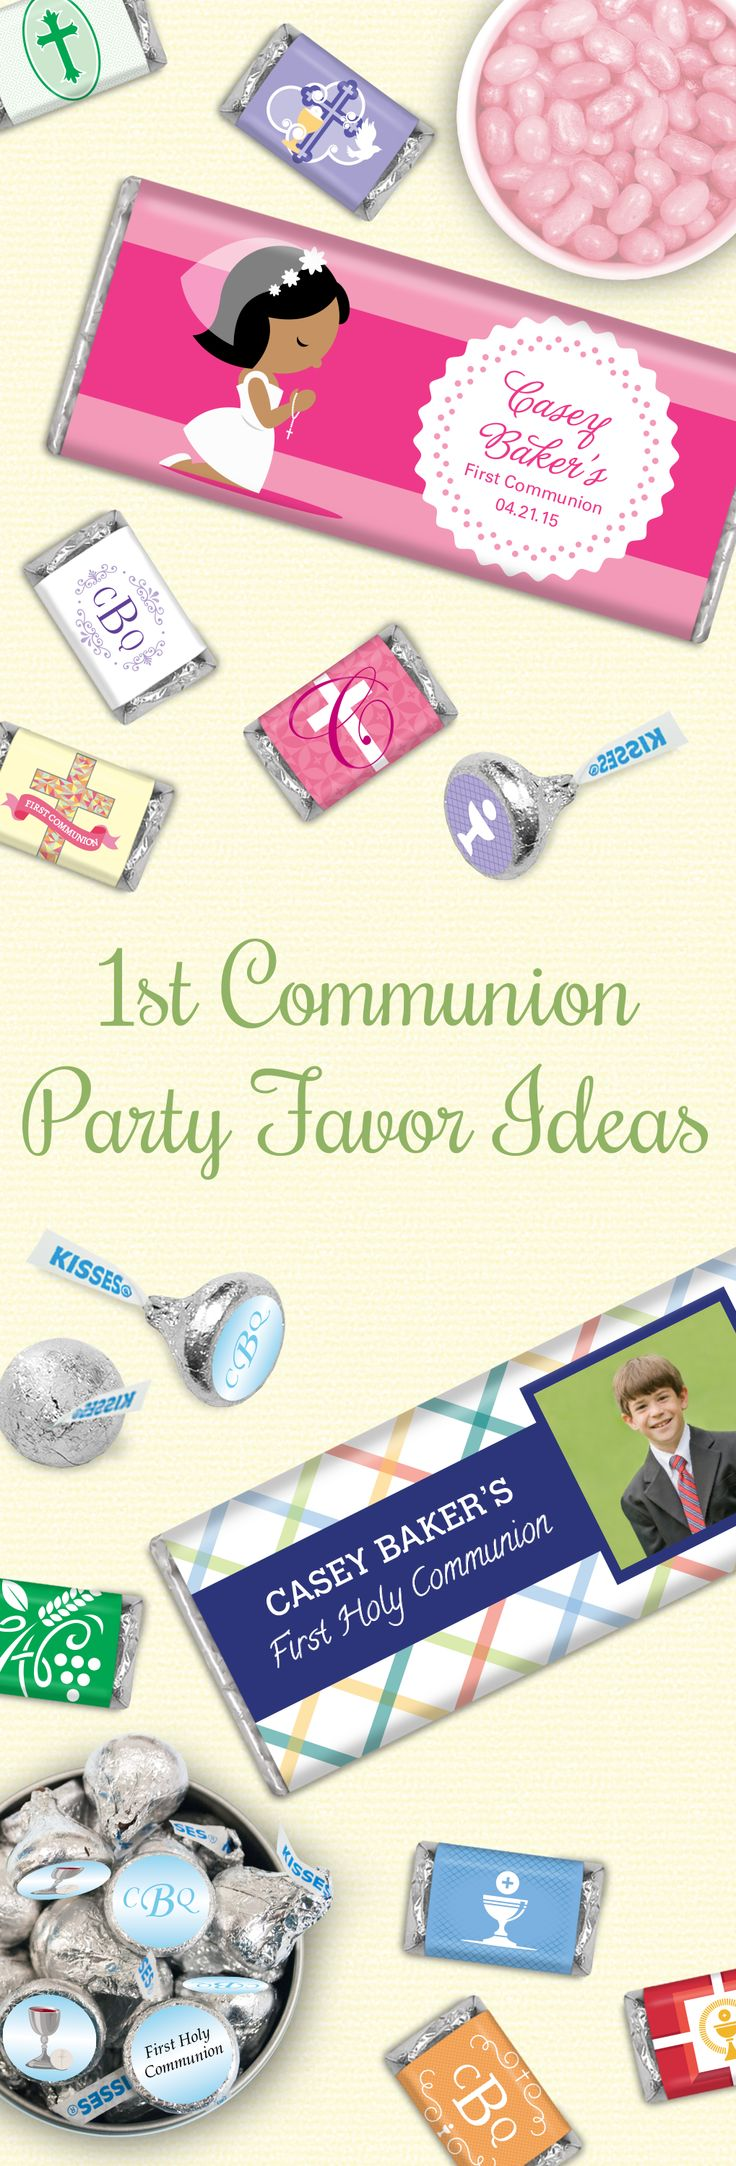 First Communion Party Favor Ideas for Boys and Girls - Personalized Chocolate for 1st Holy Communion Candy Buffet and Jelly Belly Jelly Beans in Pink or Blue